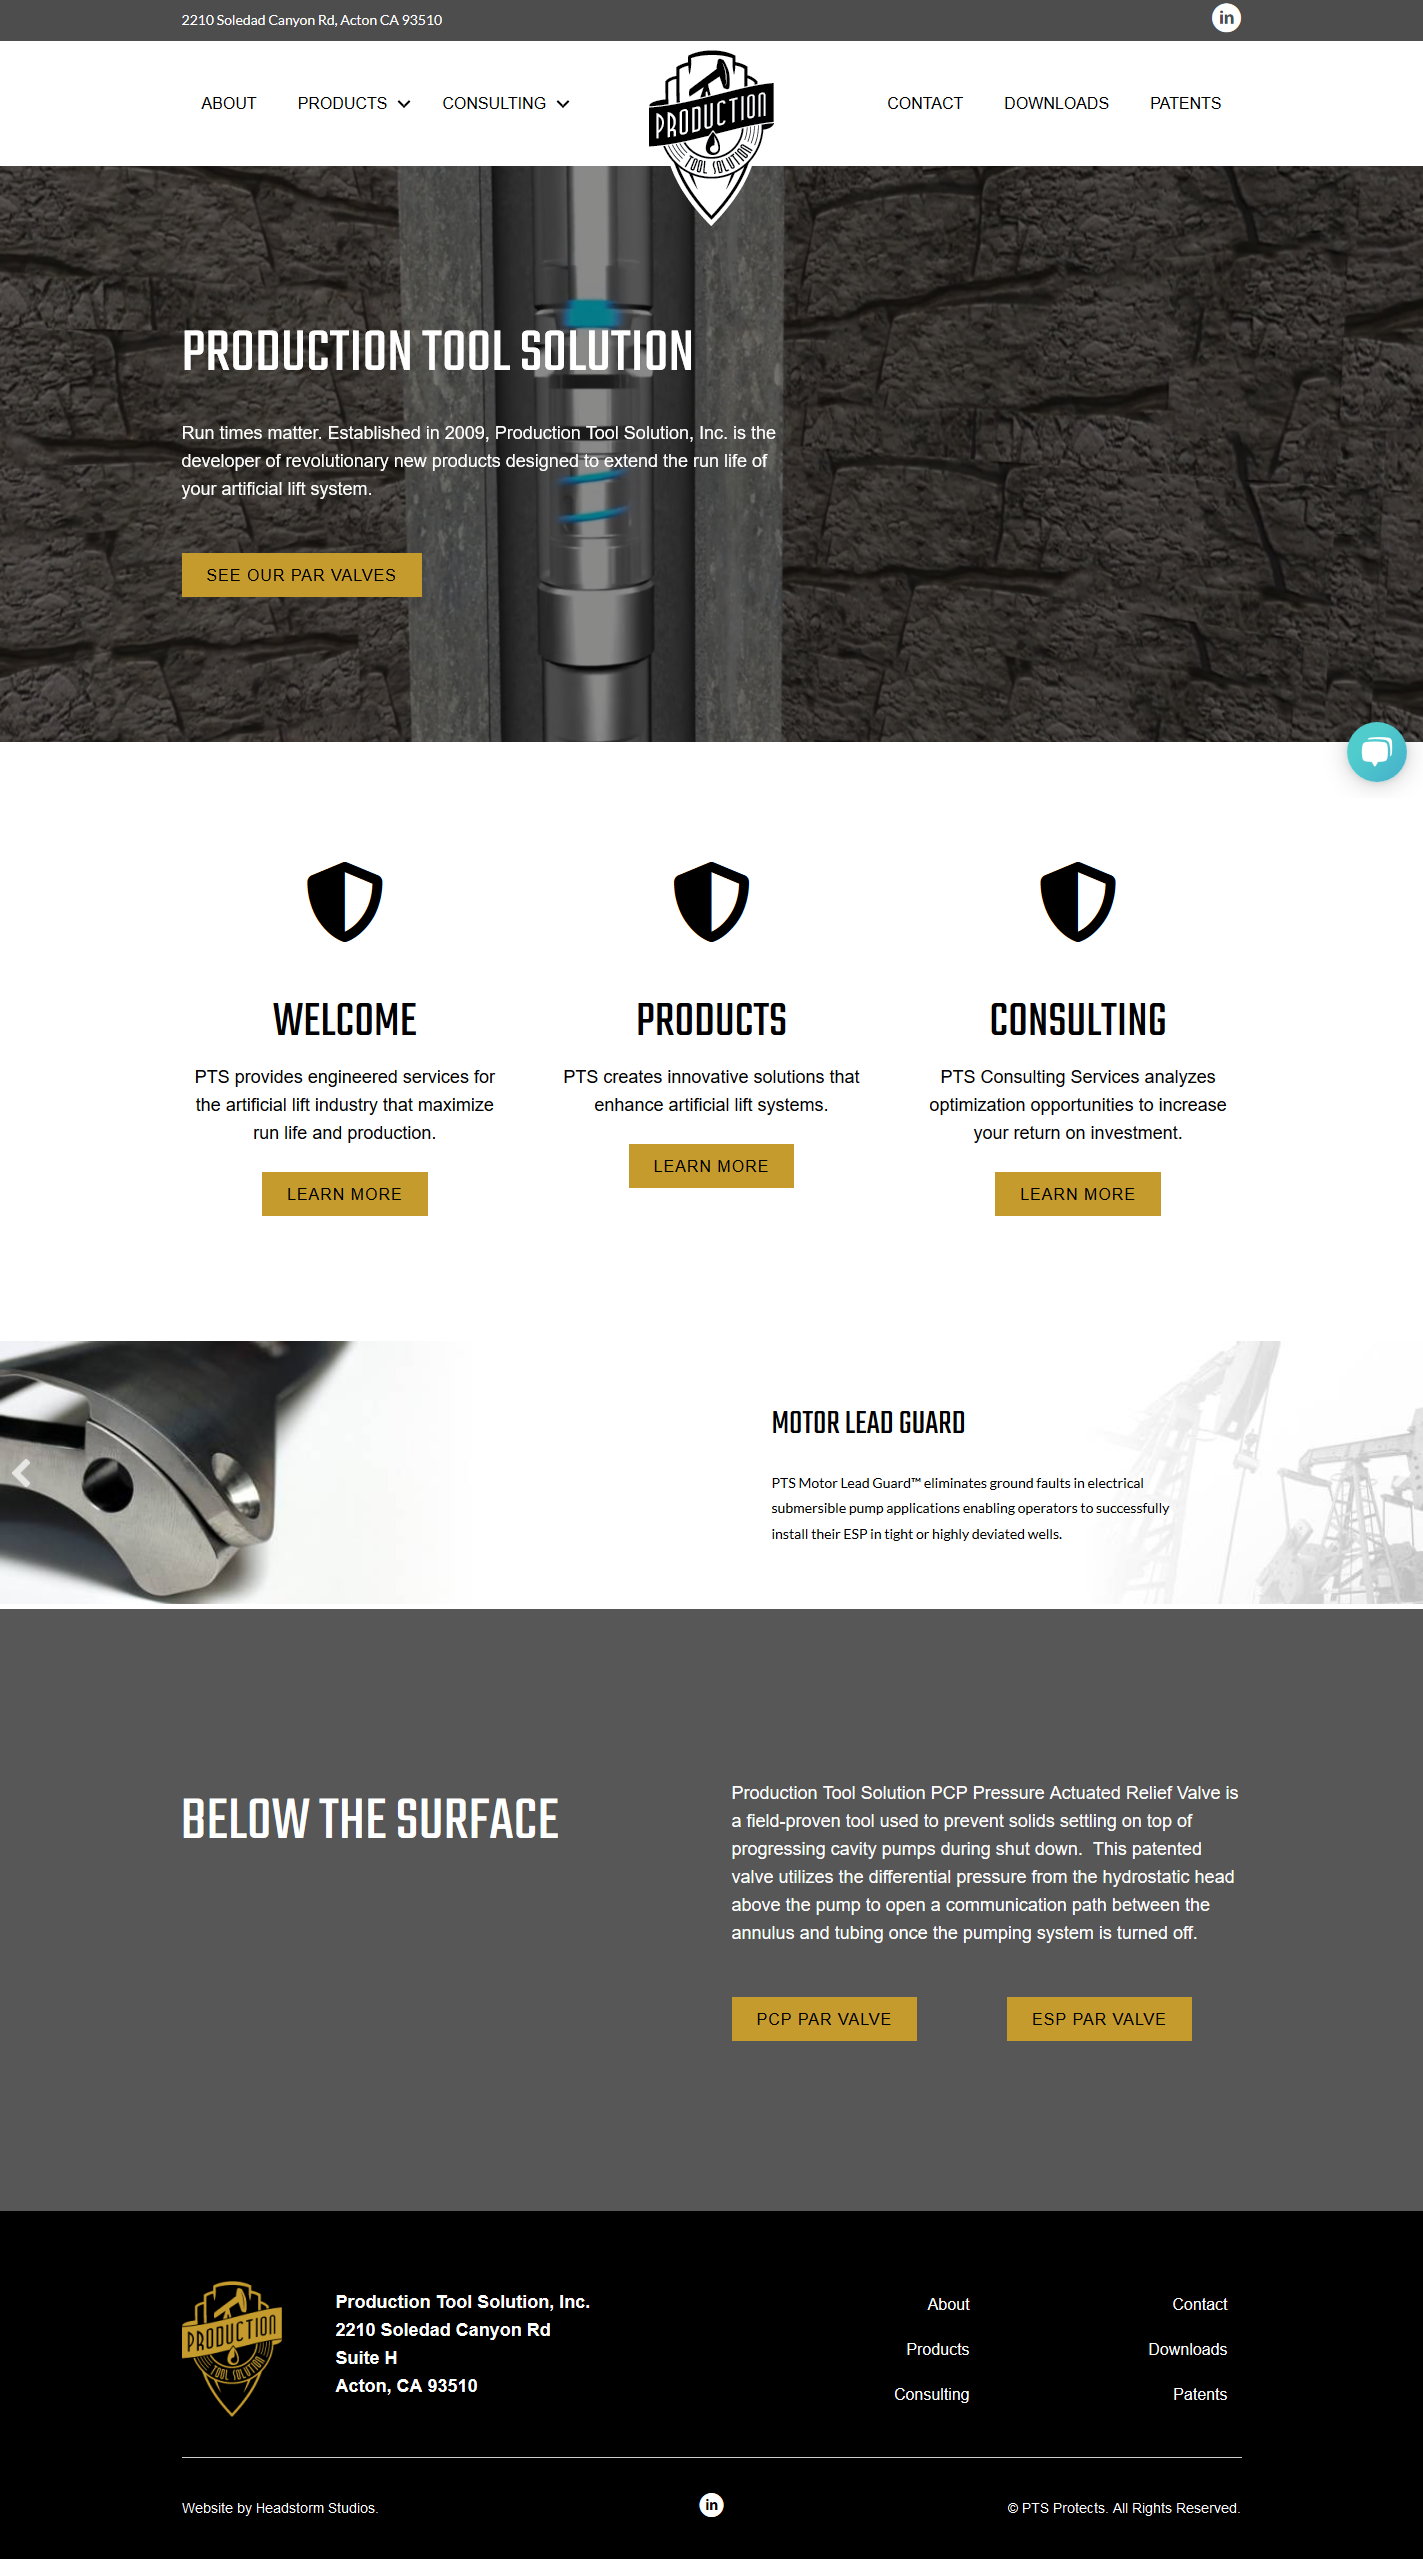 website-design-ptsprotect-headstormstudios